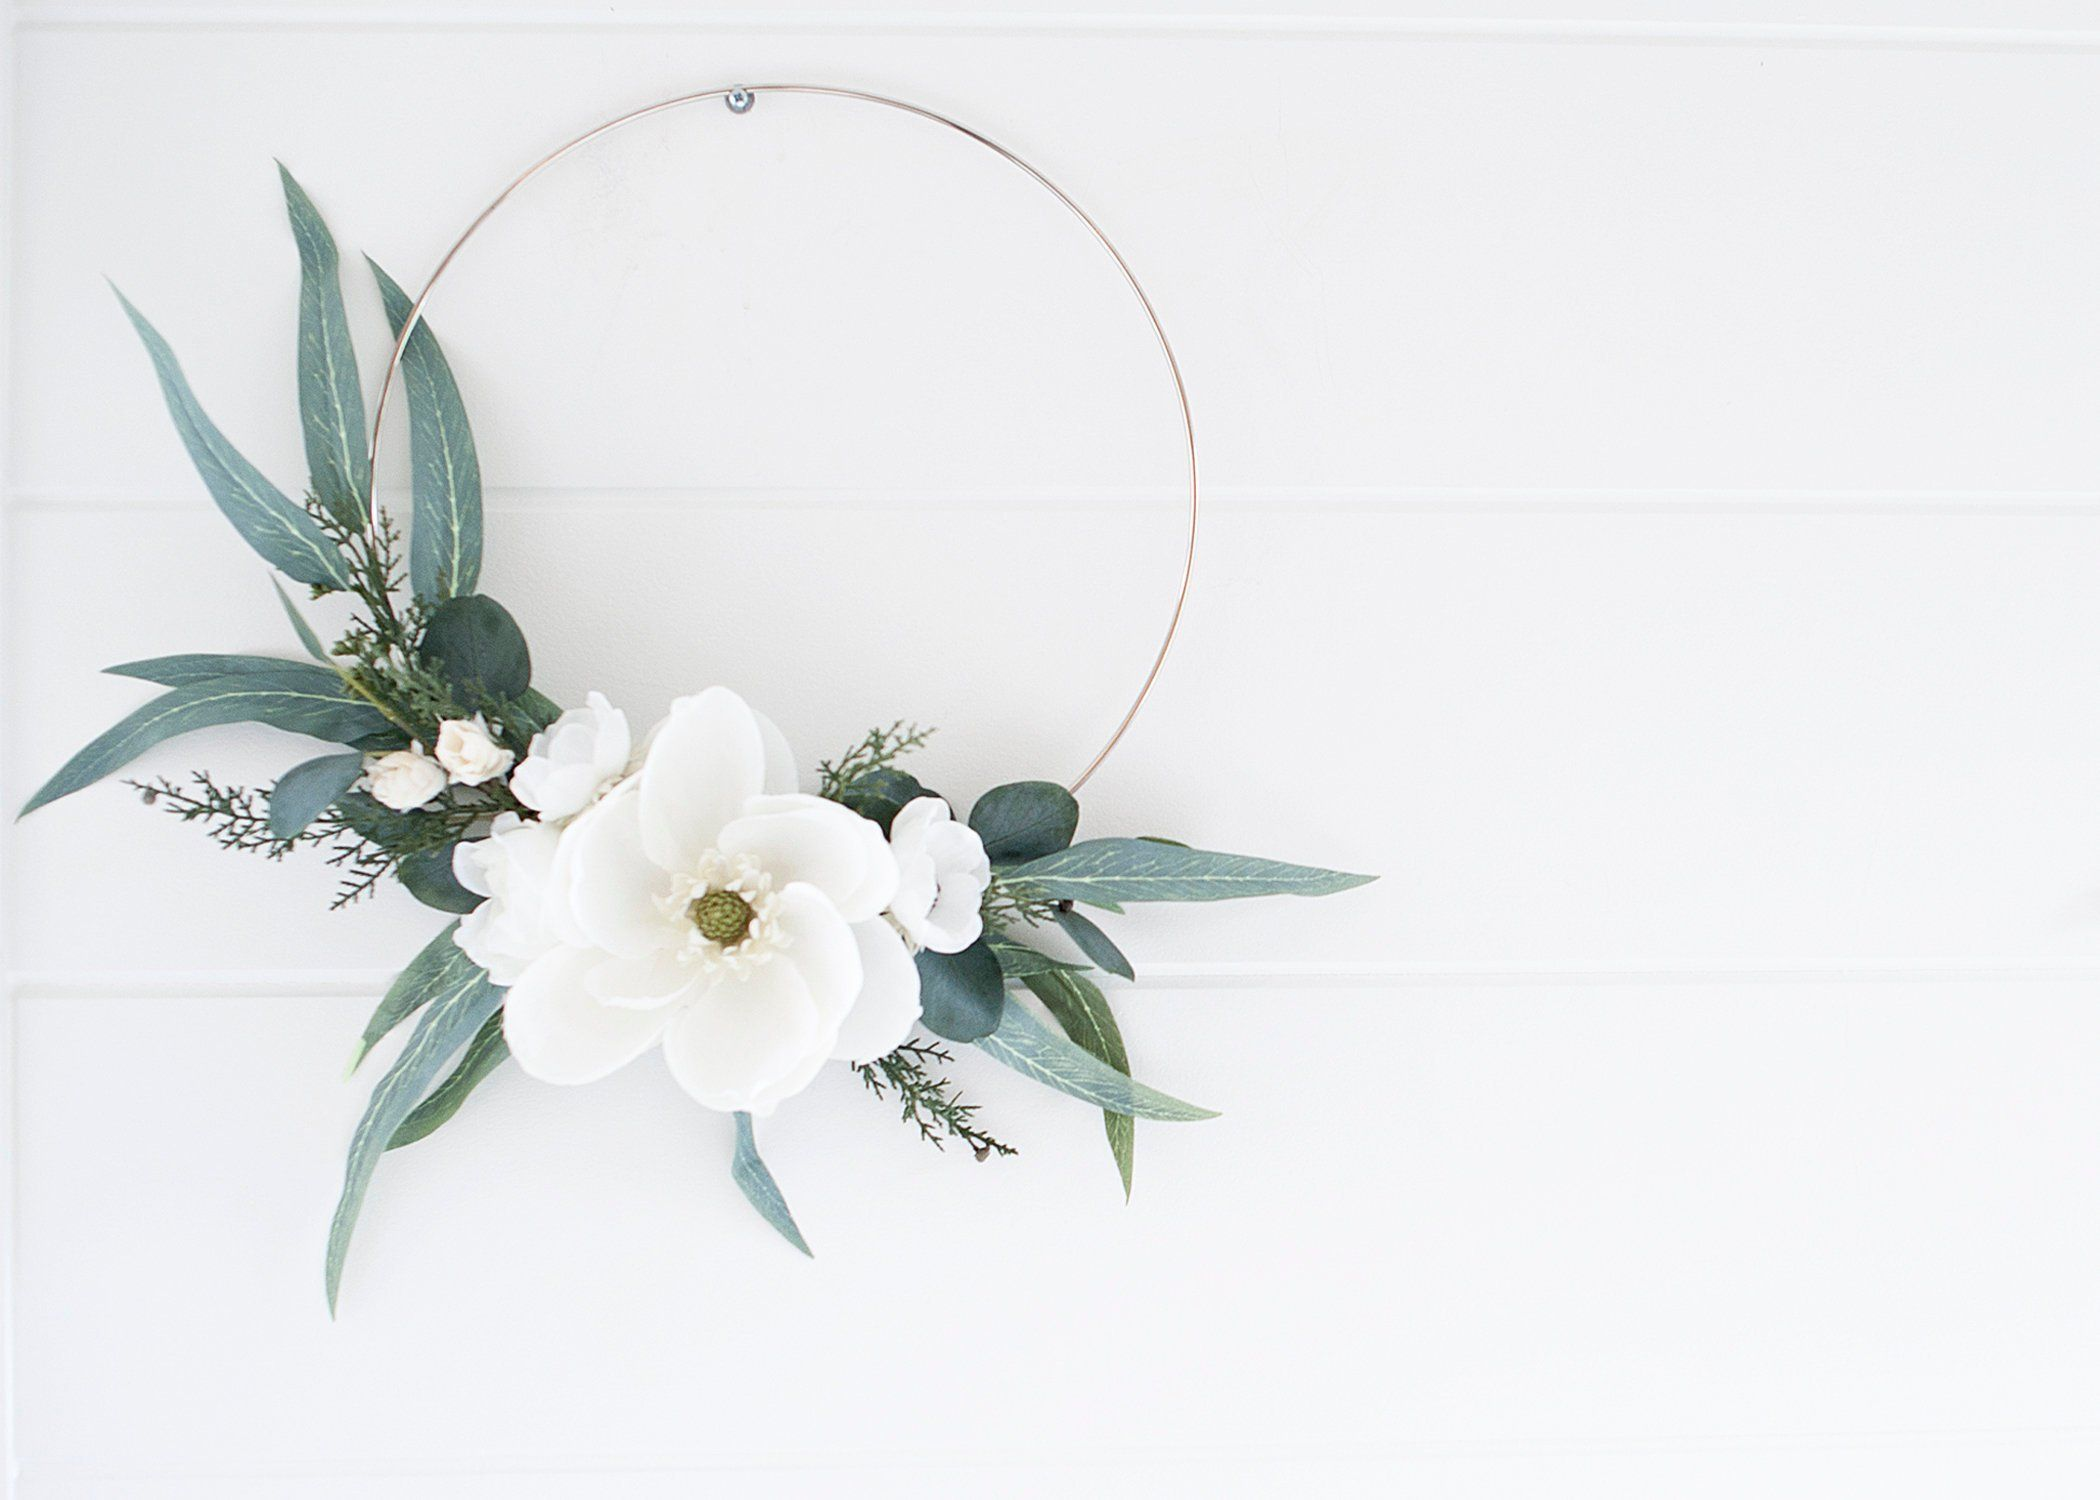 Modern Winter white magnolia & feather eucalyptus wreath|hoop wreath|winter wreath|magnolia wreath|christmas decor|christmas wreath| by ModSugarDesign on Etsy #magnoliachristmasdecor Modern Winter white magnolia & feather eucalyptus wreath|hoop wreath|winter wreath|magnolia wreath|christmas decor|christmas wreath| by ModSugarDesign on Etsy #magnoliachristmasdecor